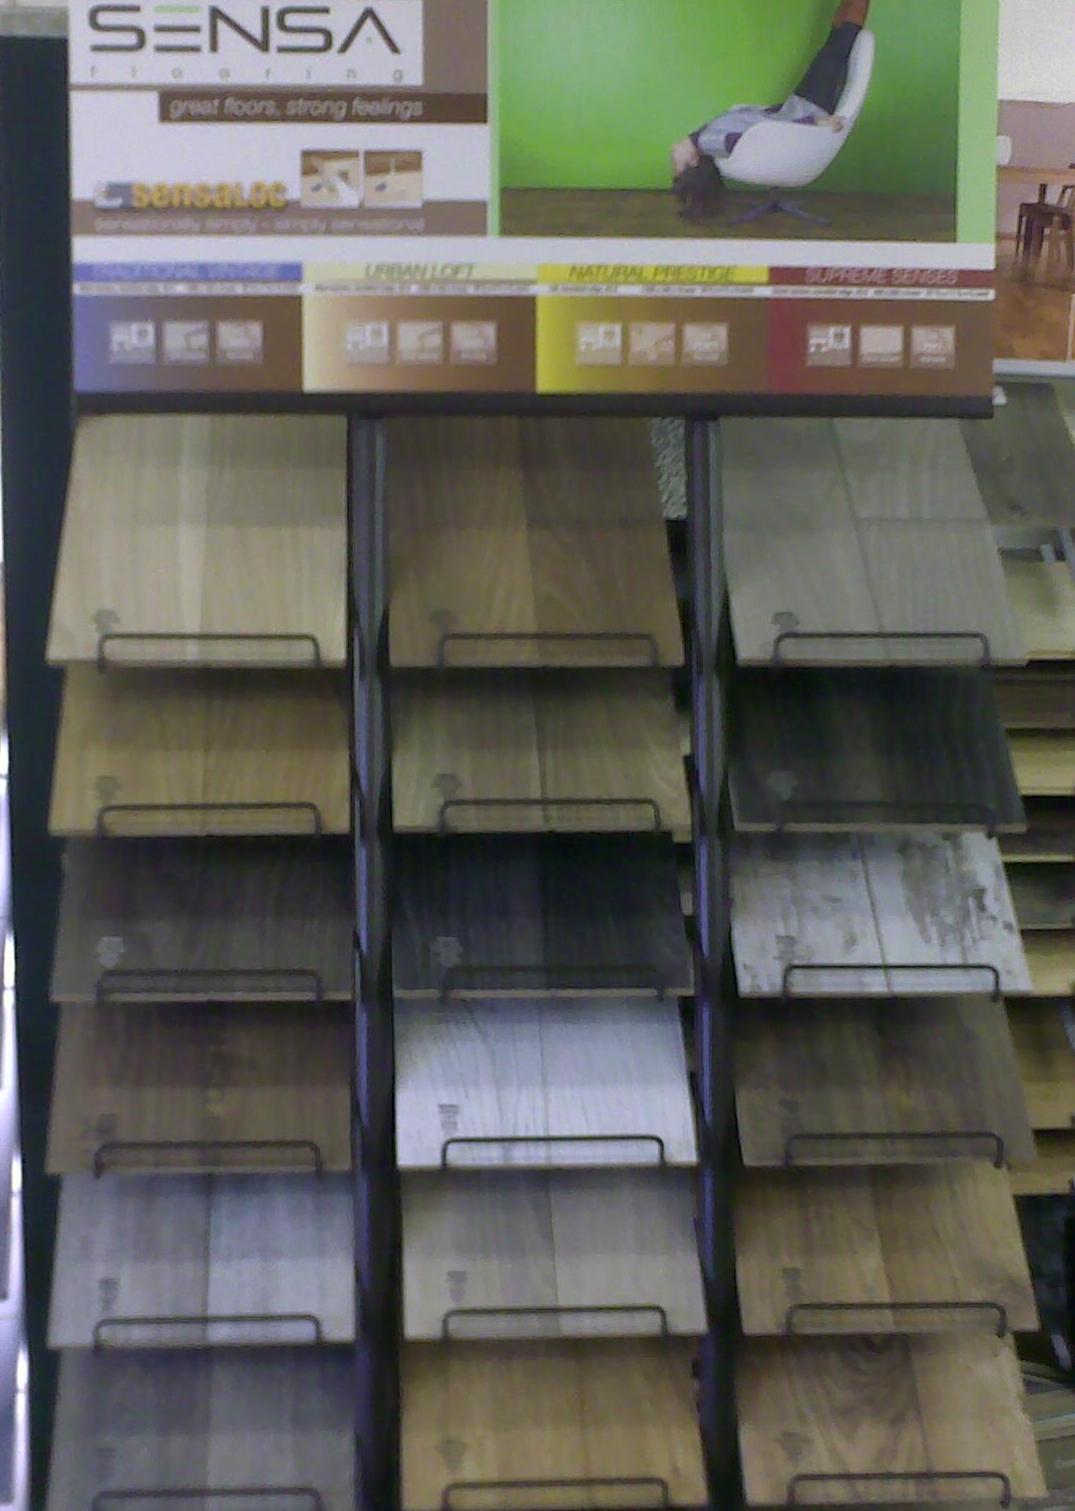 Sensa laminate display stand uk flooring blog for Laminate flooring displays